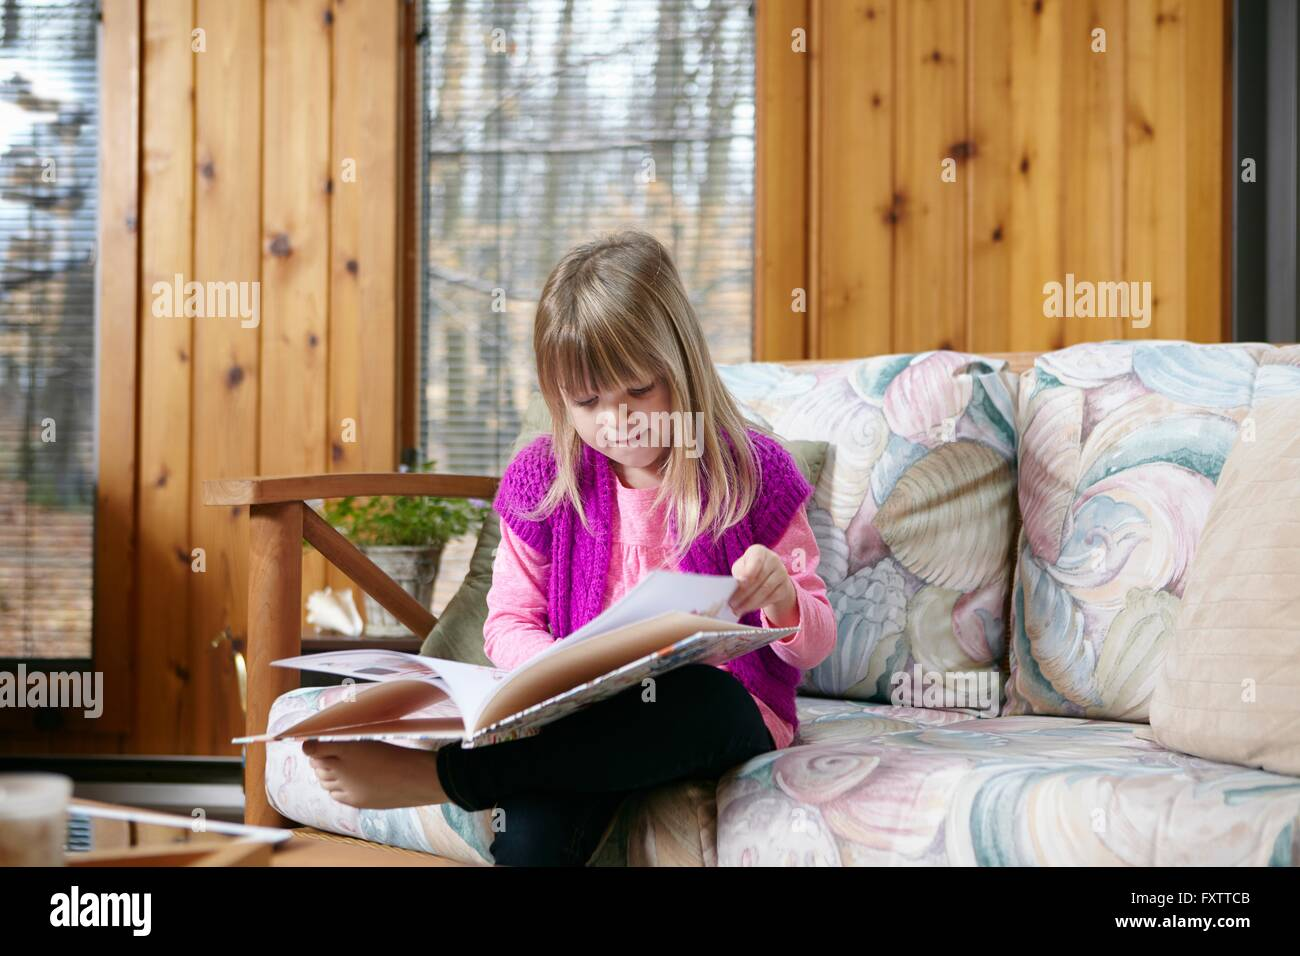 Girl sitting reading story book  on living room sofa - Stock Image